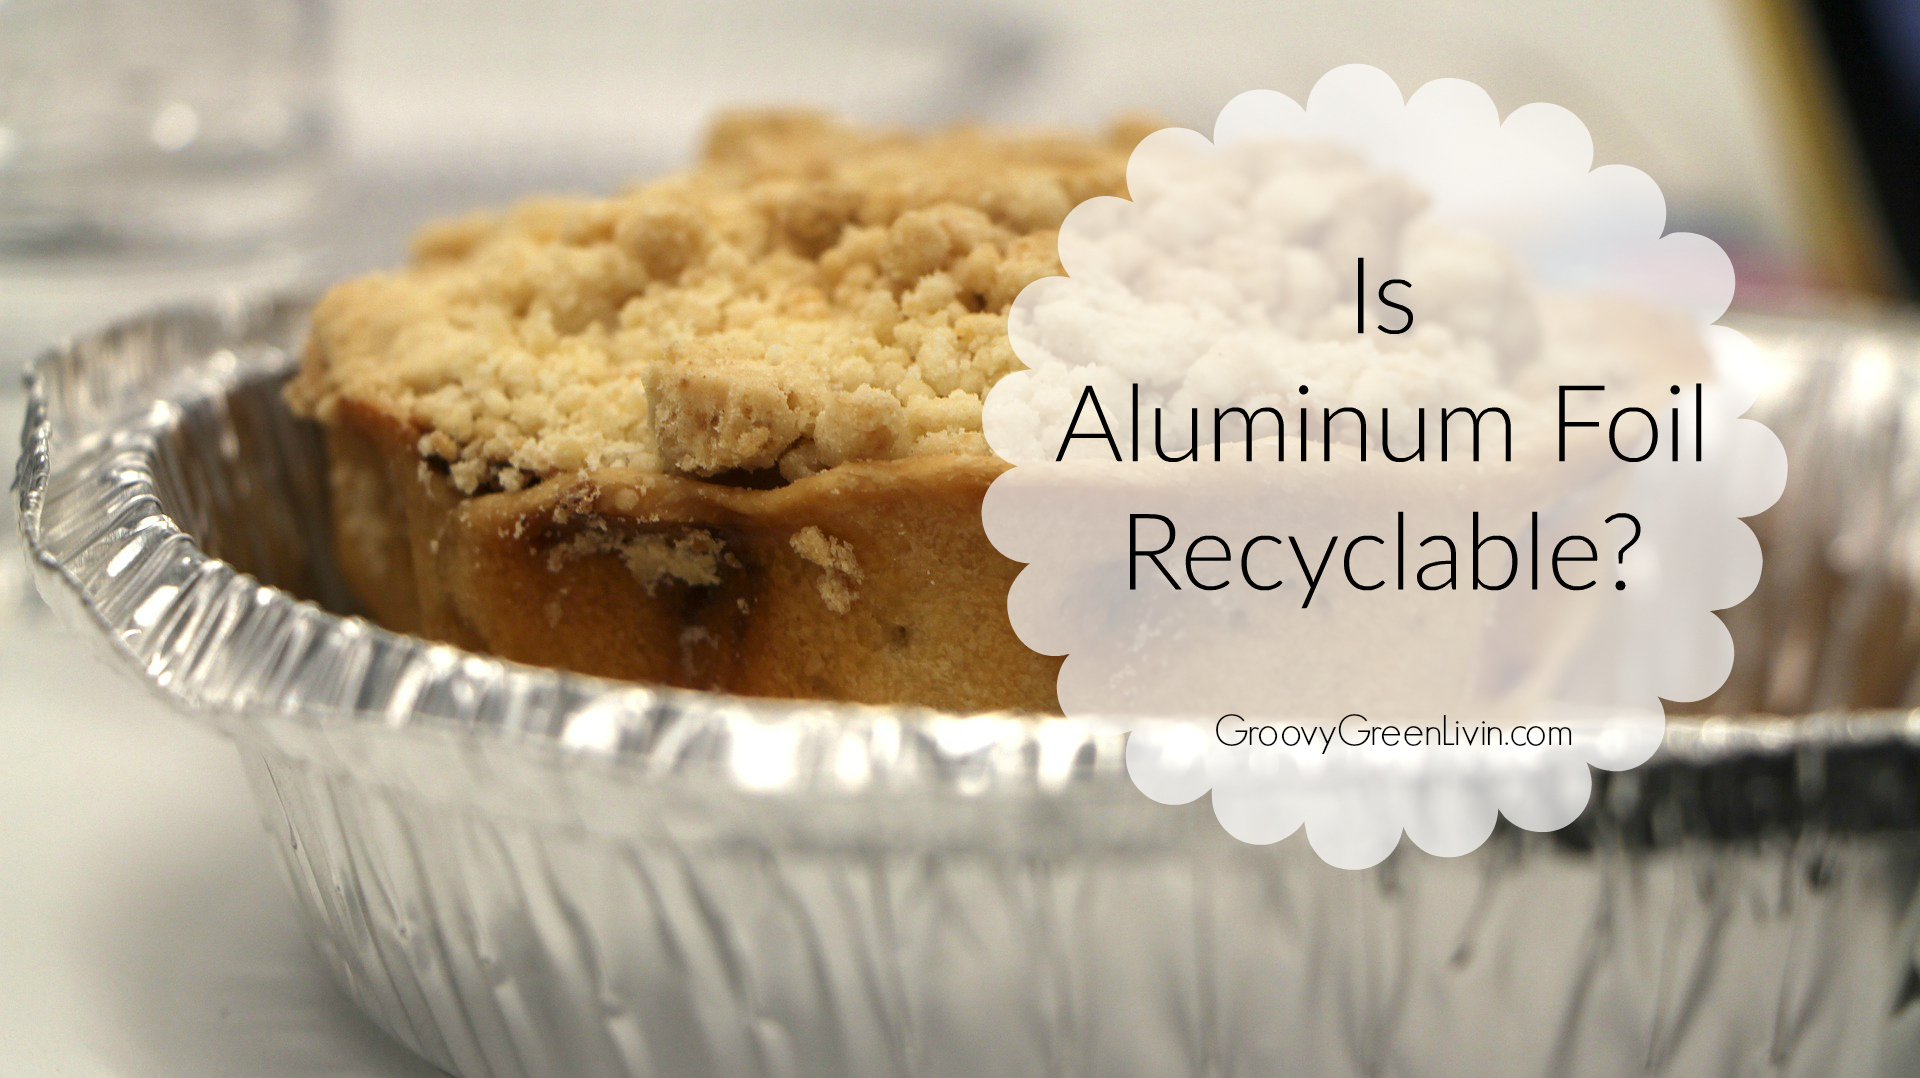 Is Aluminum Foil Recyclable? The Answer is Complicated